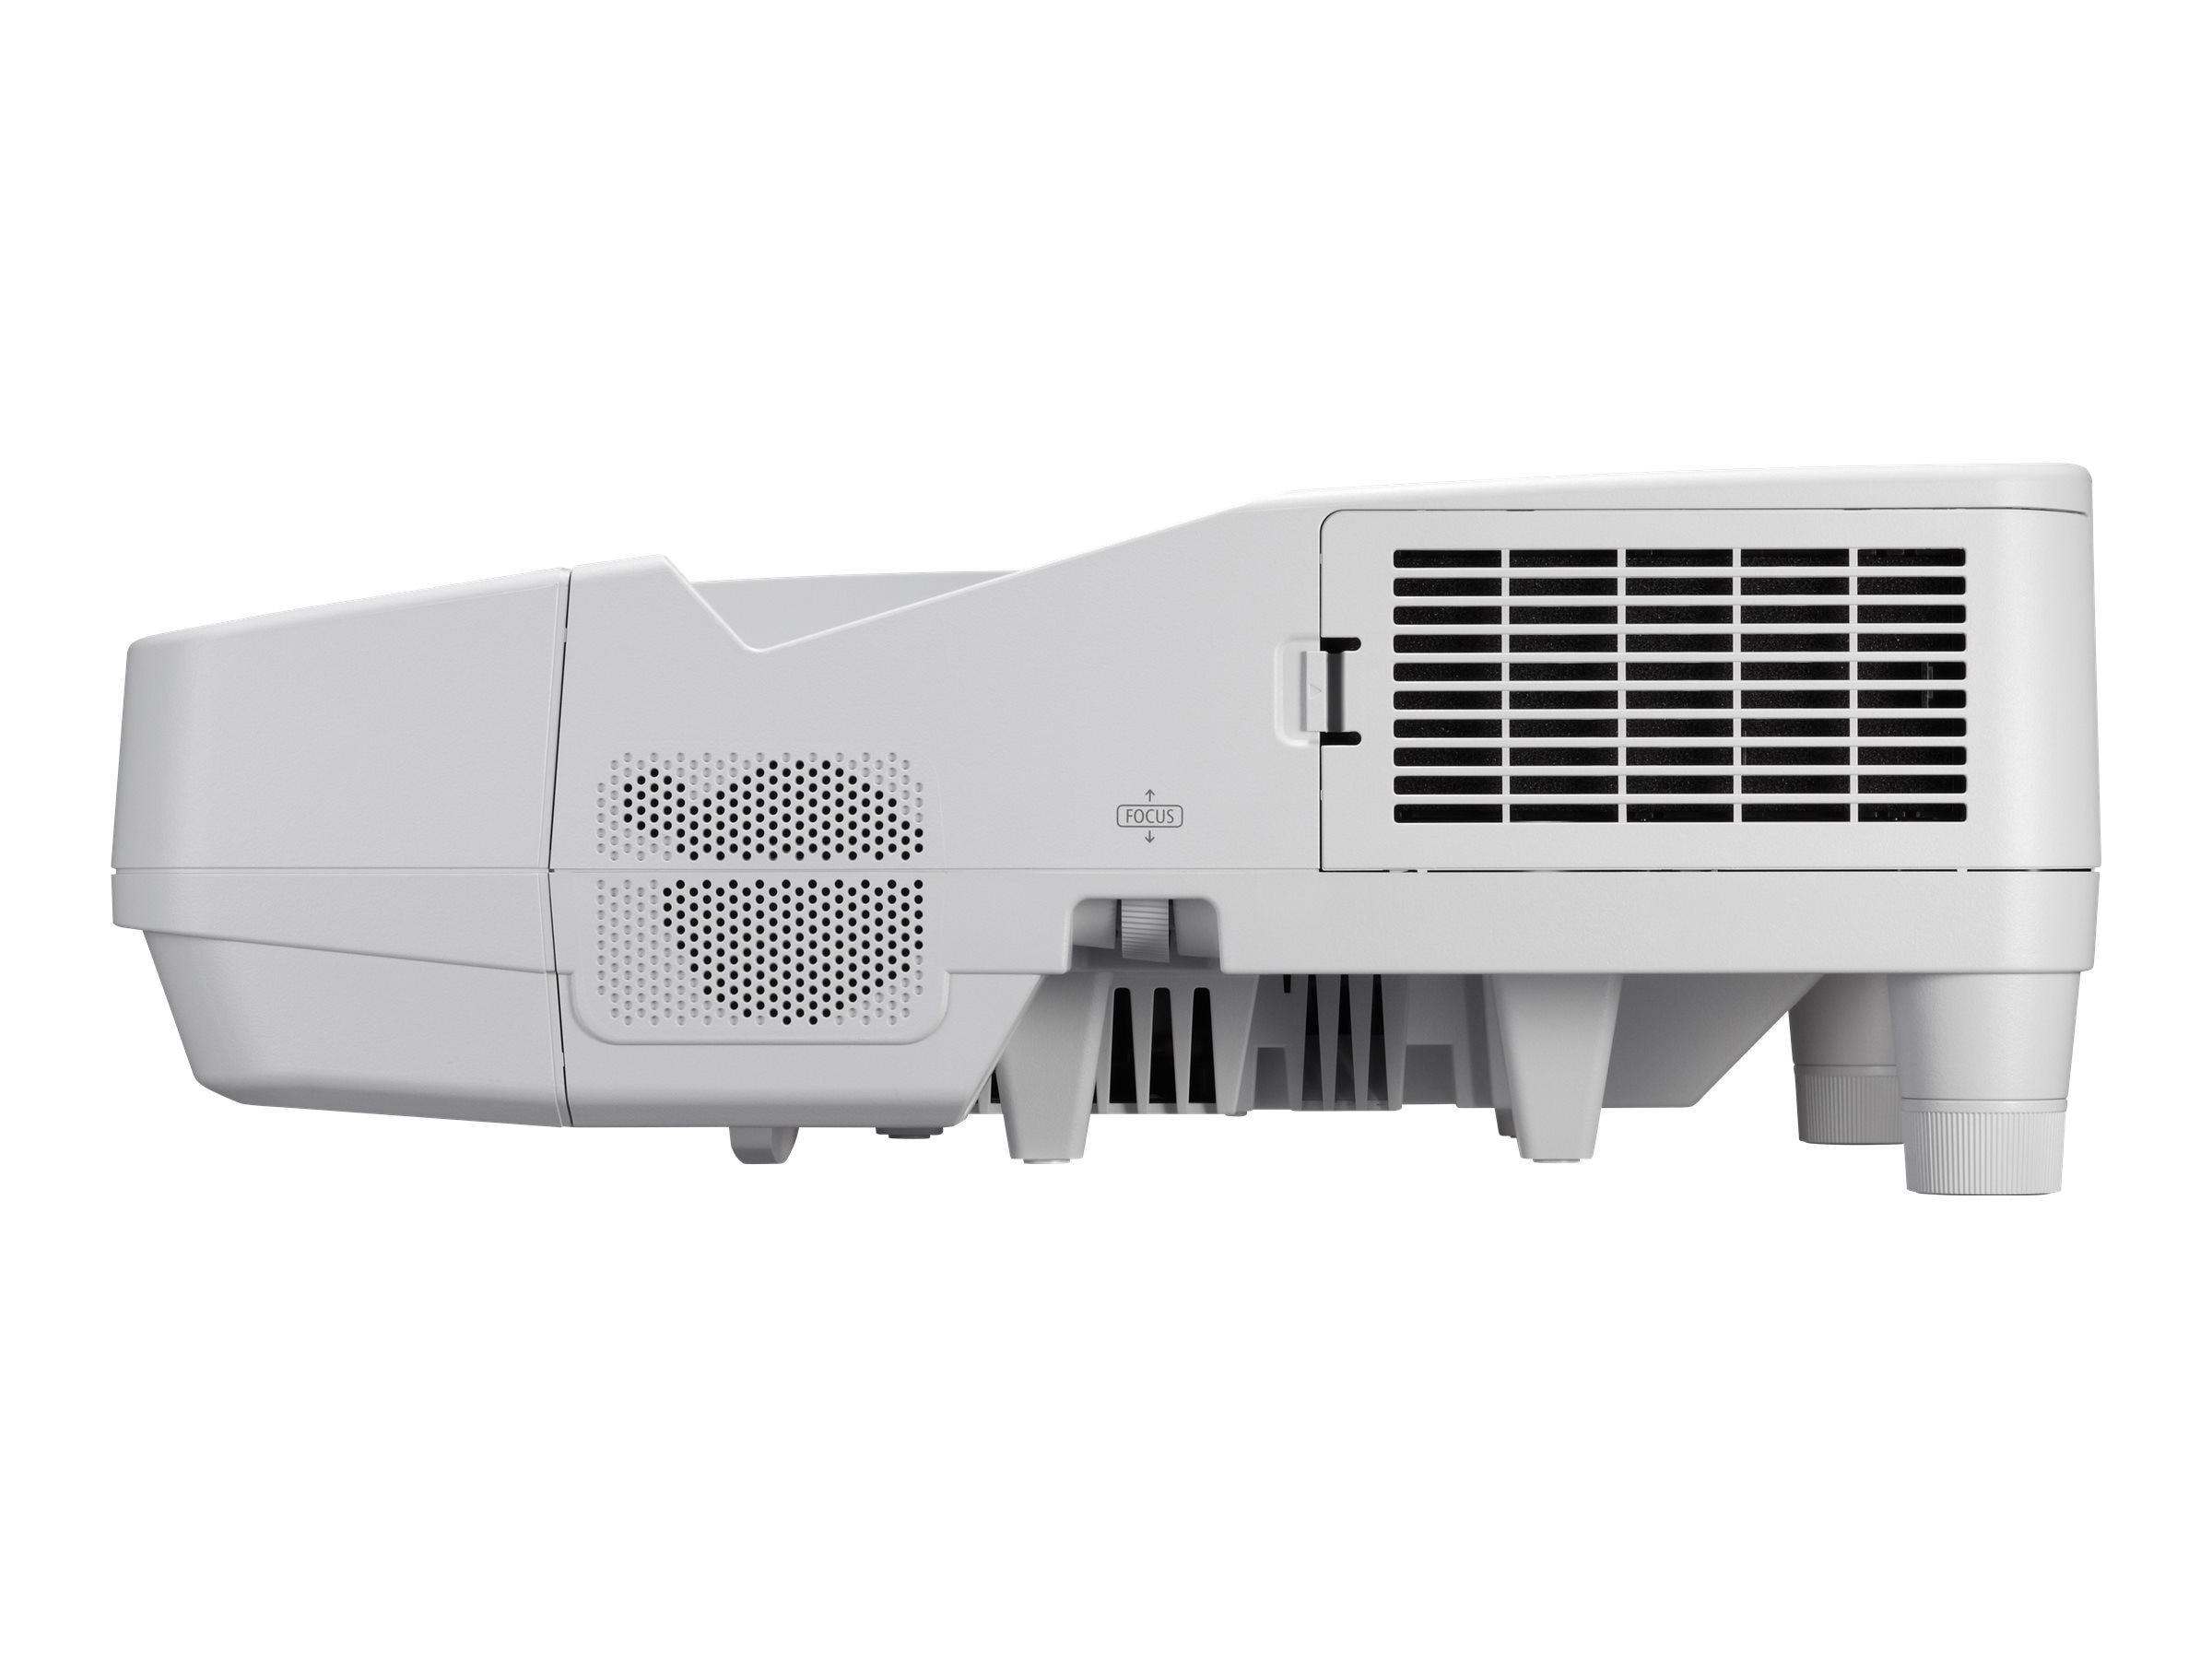 NEC UM351W Ultra Short Throw LCD Projector, 3500 Lumens, White with Wall Mount, NP-UM351W-WK